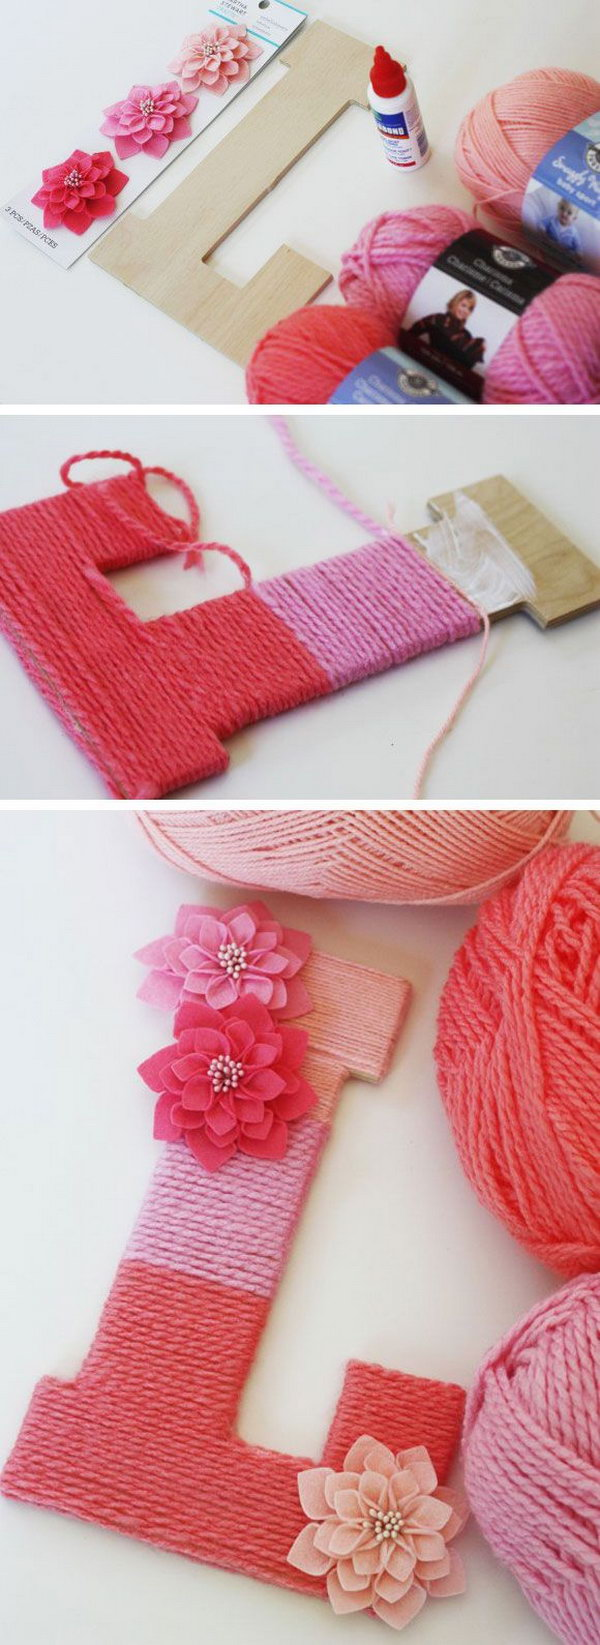 20 cute diy yarn crafts you can 39 t wait to do right away for Cute easy diy projects